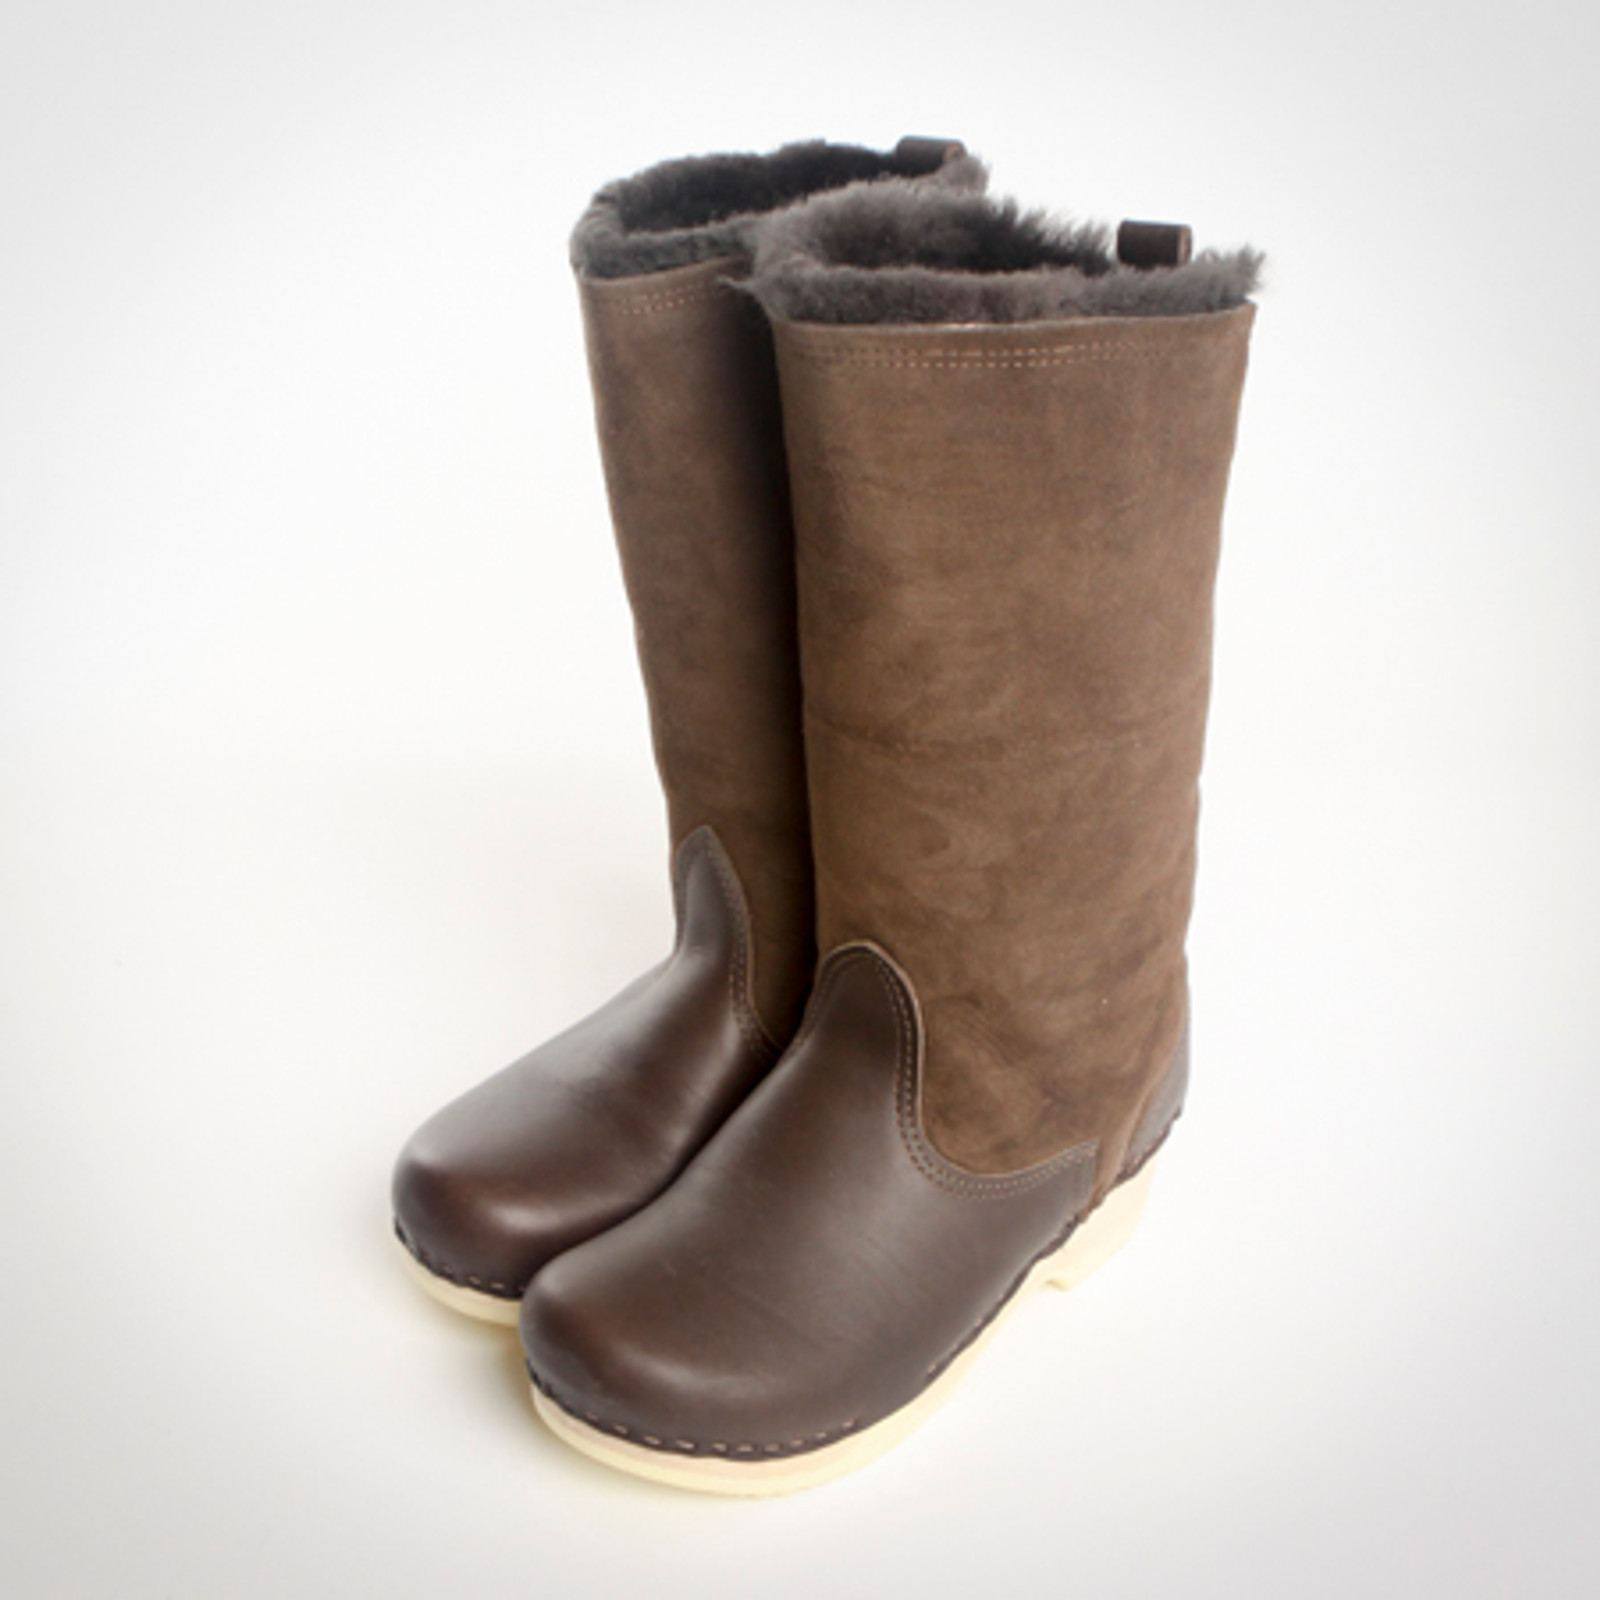 Chocolate Shearling with Fudge on Natural Base